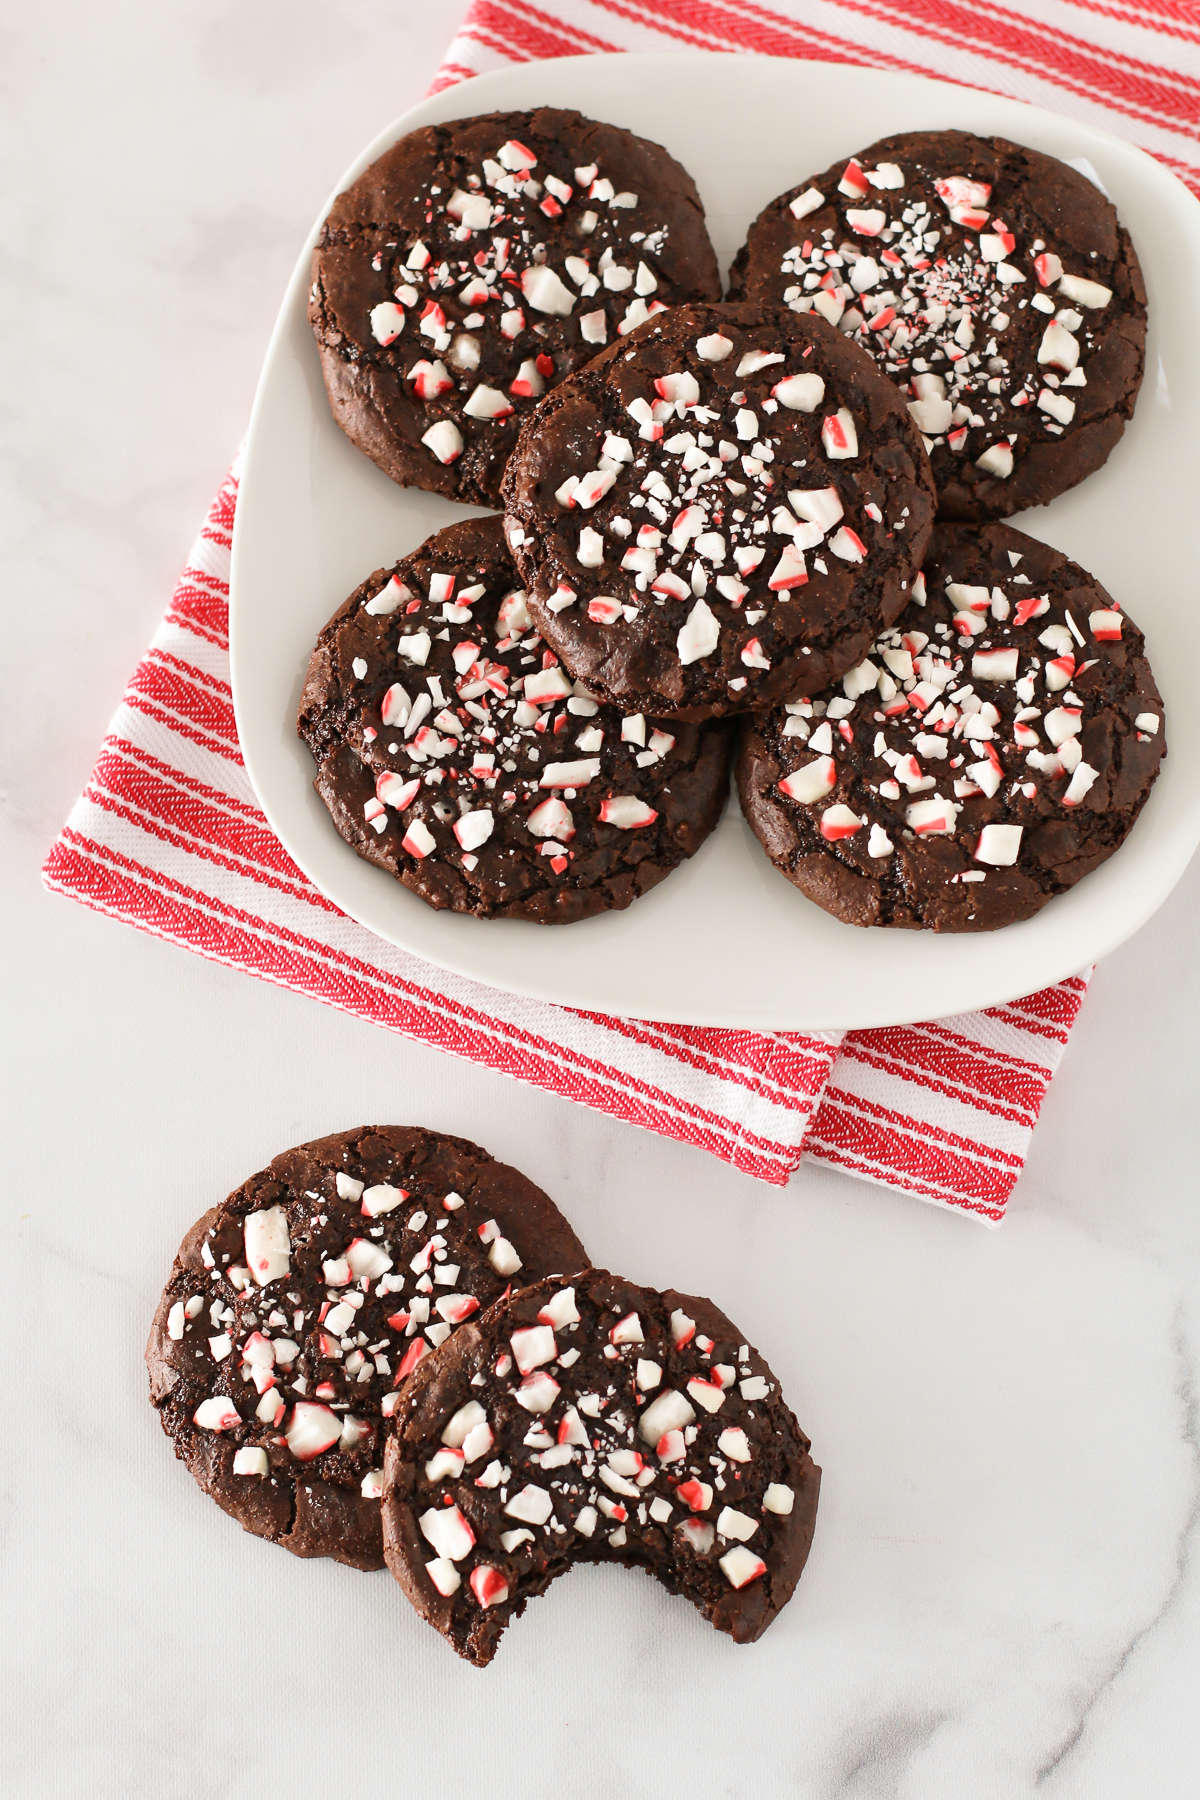 Gluten Free Vegan Chewy Chocolate Peppermint Cookies. These chocolate peppermint cookies are delicious and of course, full of holiday cheer!